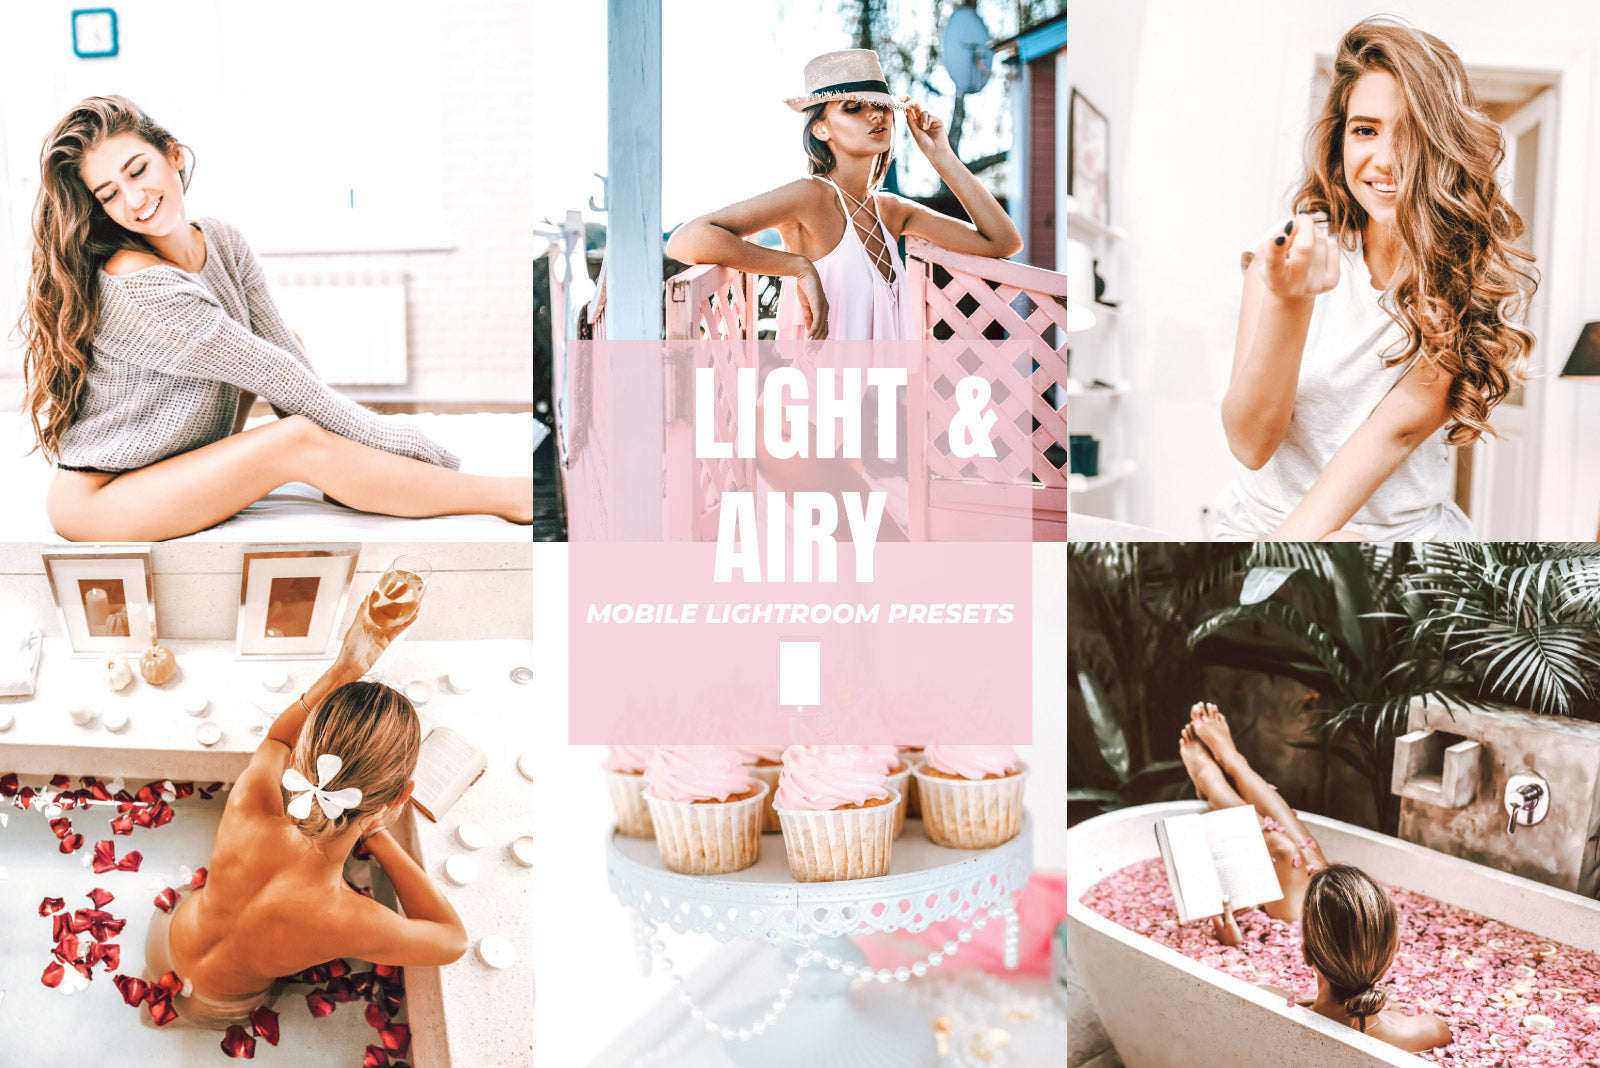 LIGHT & AIRY MOBILE LIGHTROOM PRESETS by The Viral Presets